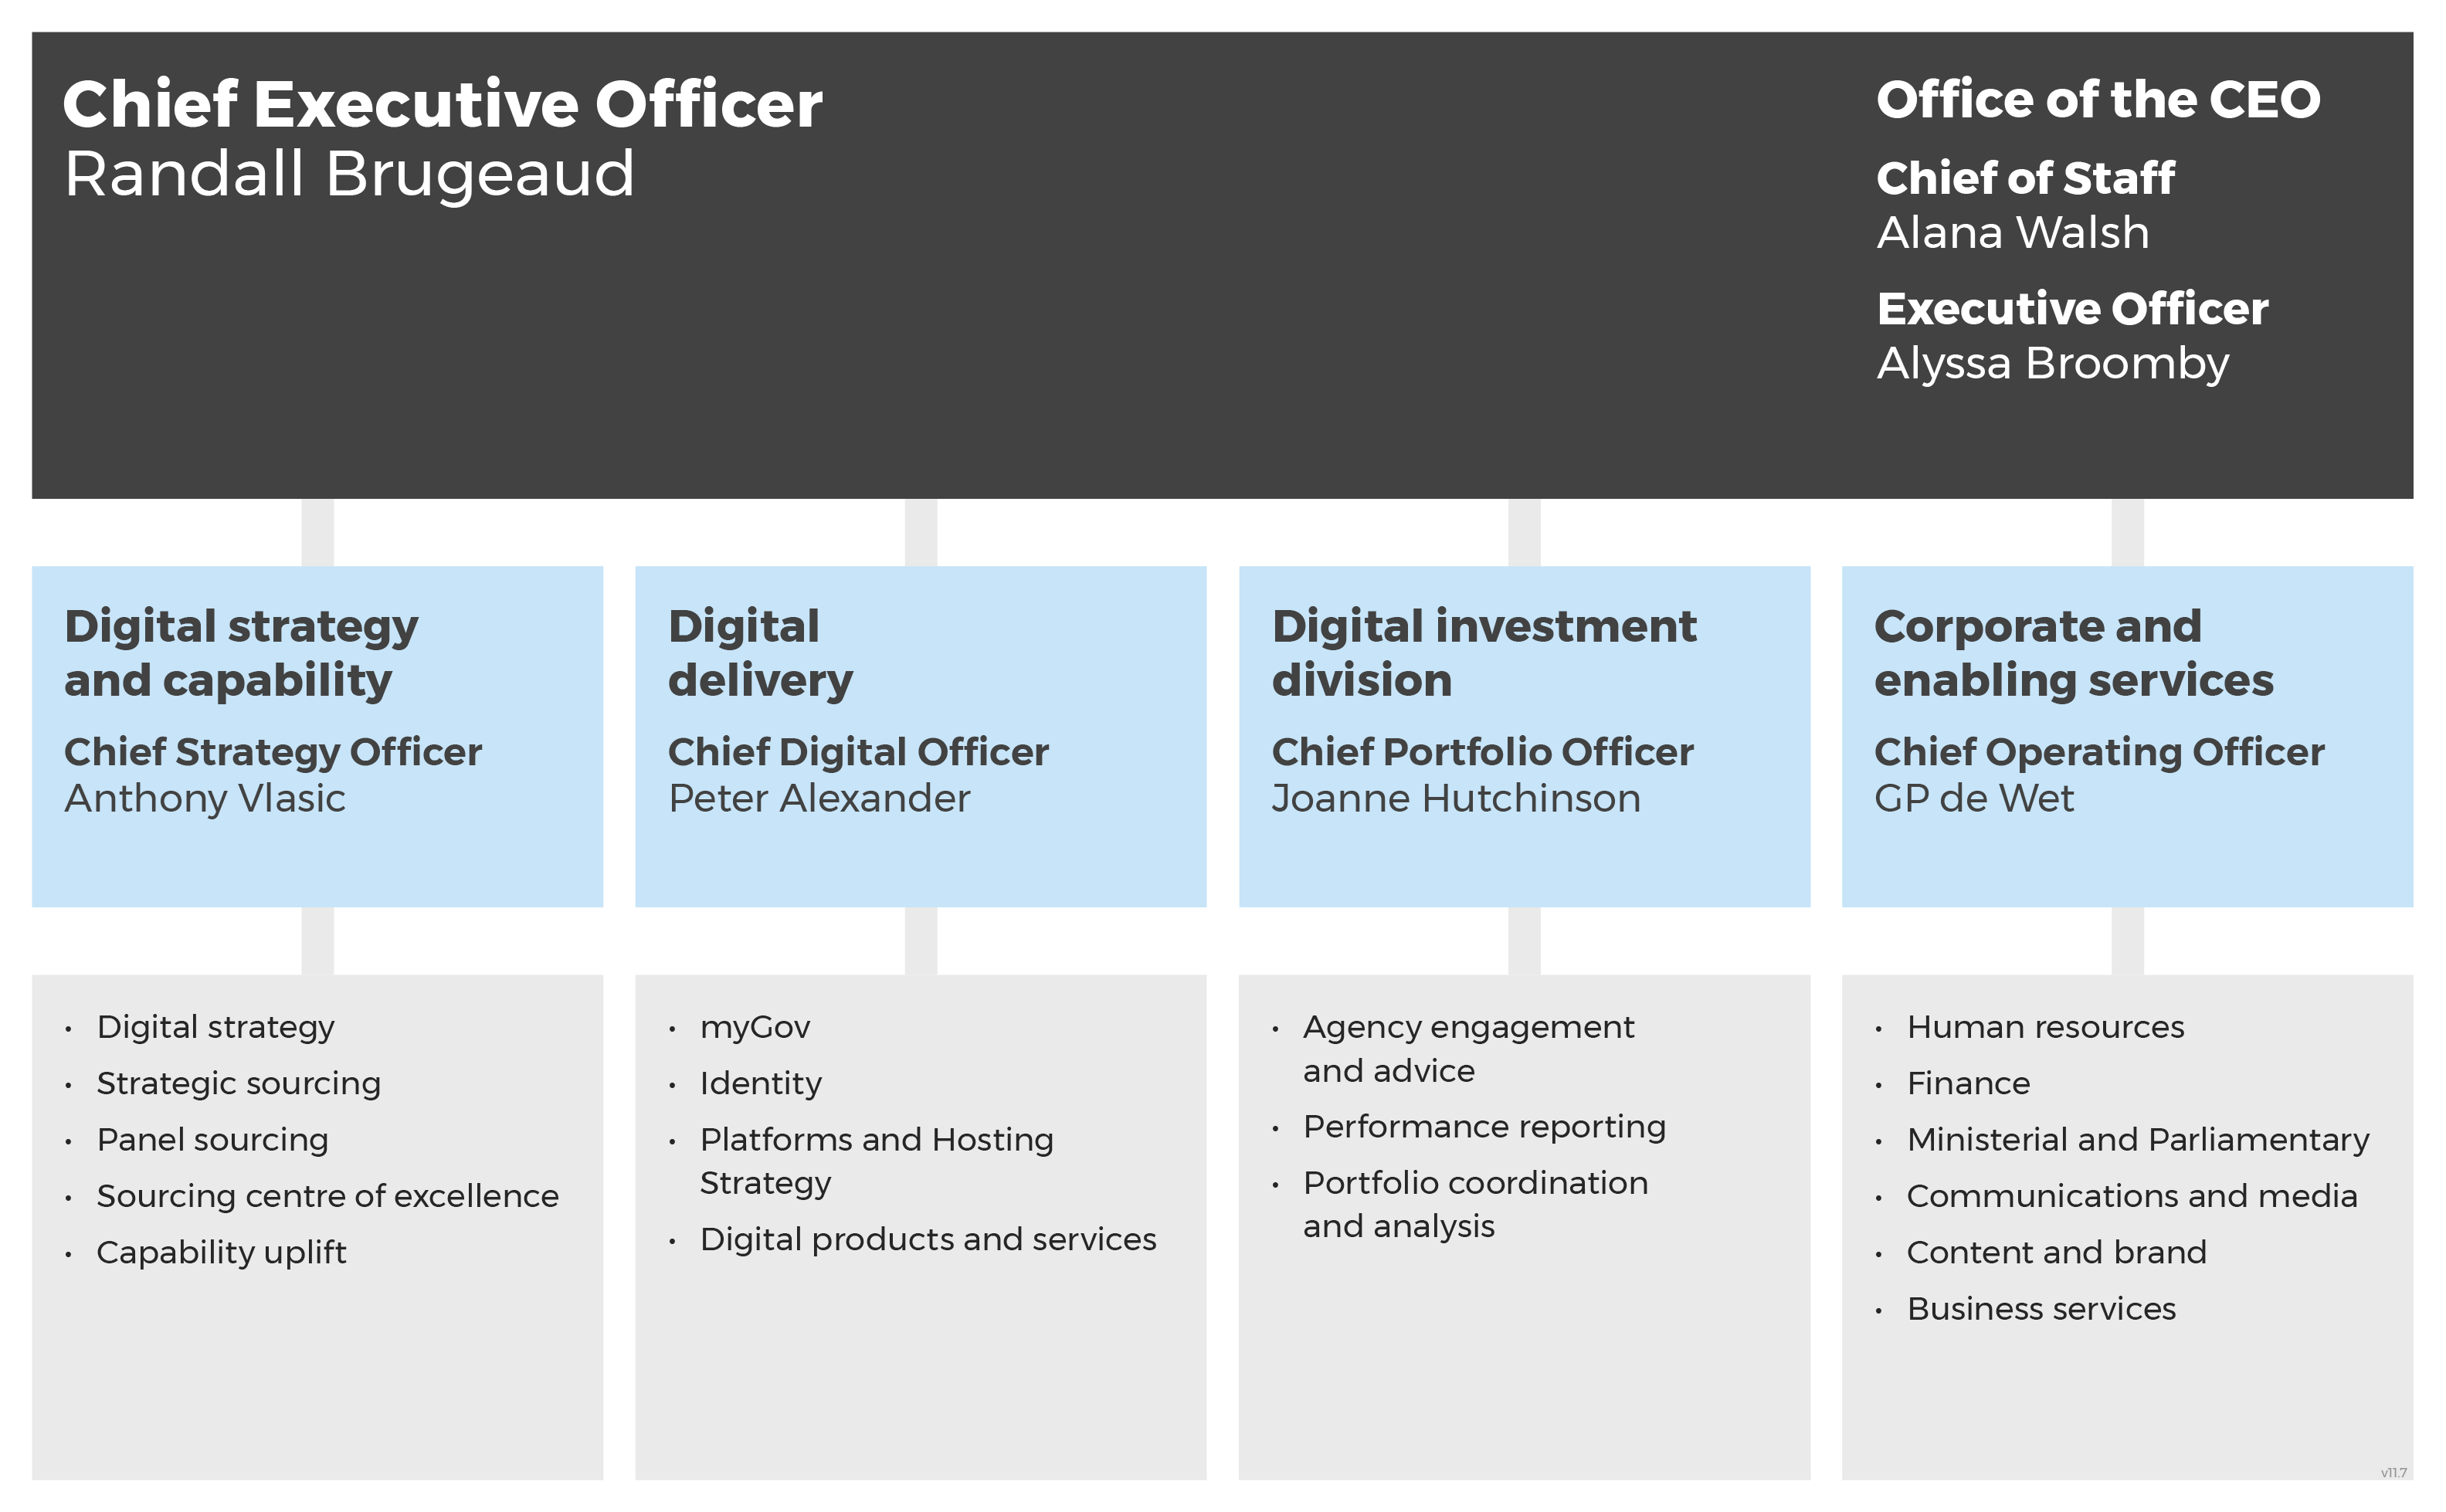 DTA Organisation Chart as at 17 July 2019. Roles and responsibilities are described in the rest of the page.